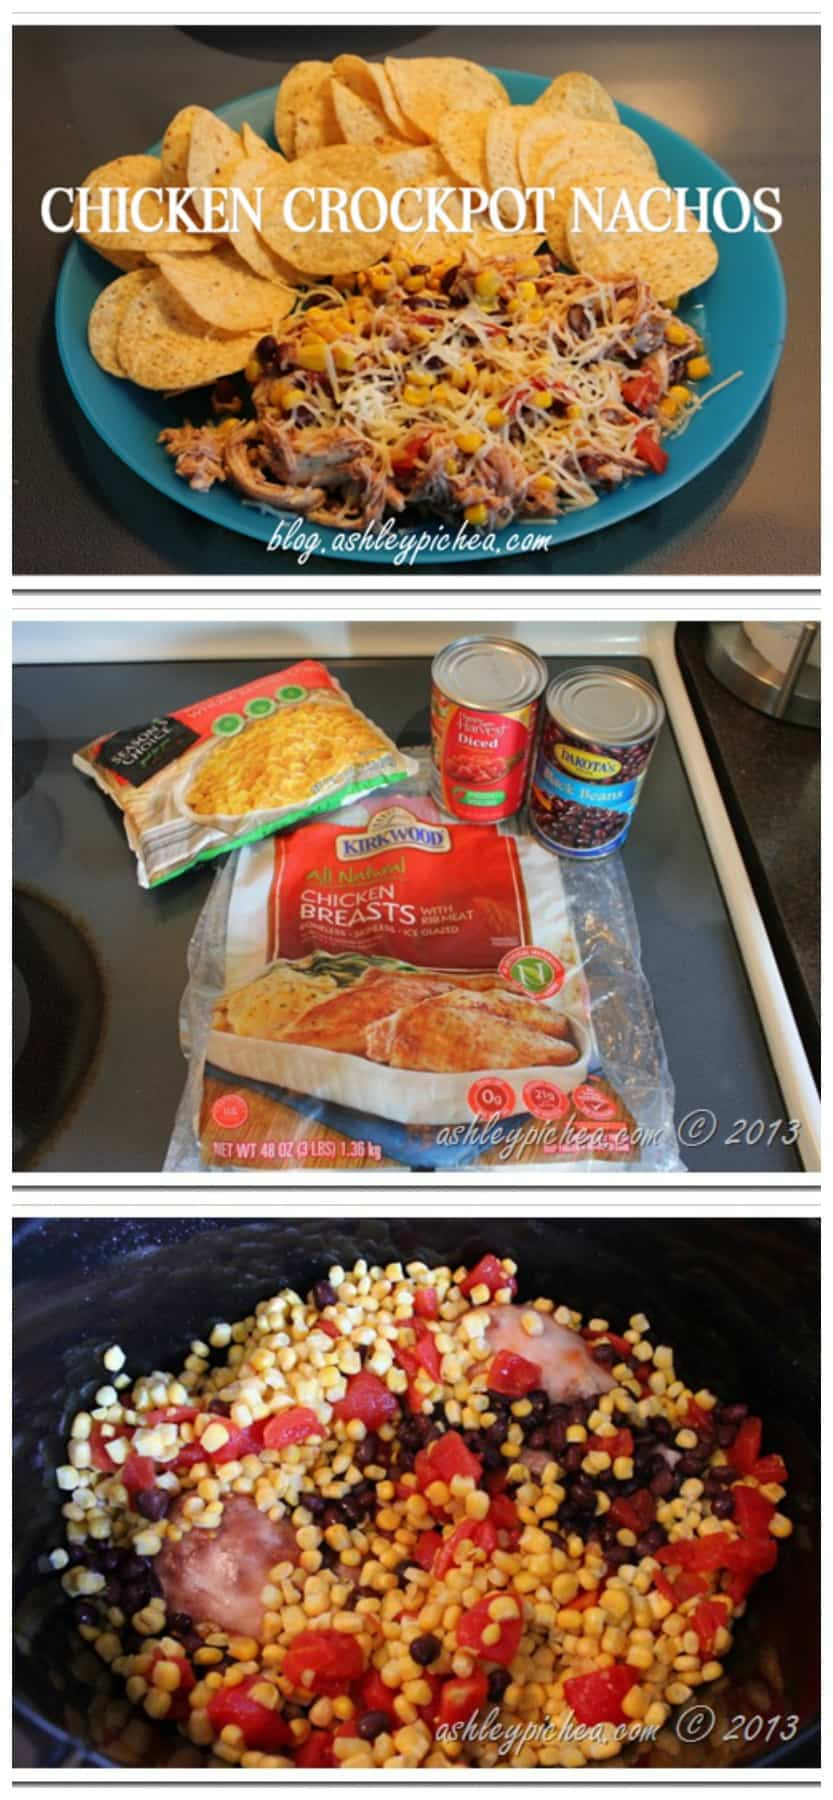 Chicken Crockpot Nacho Recipe